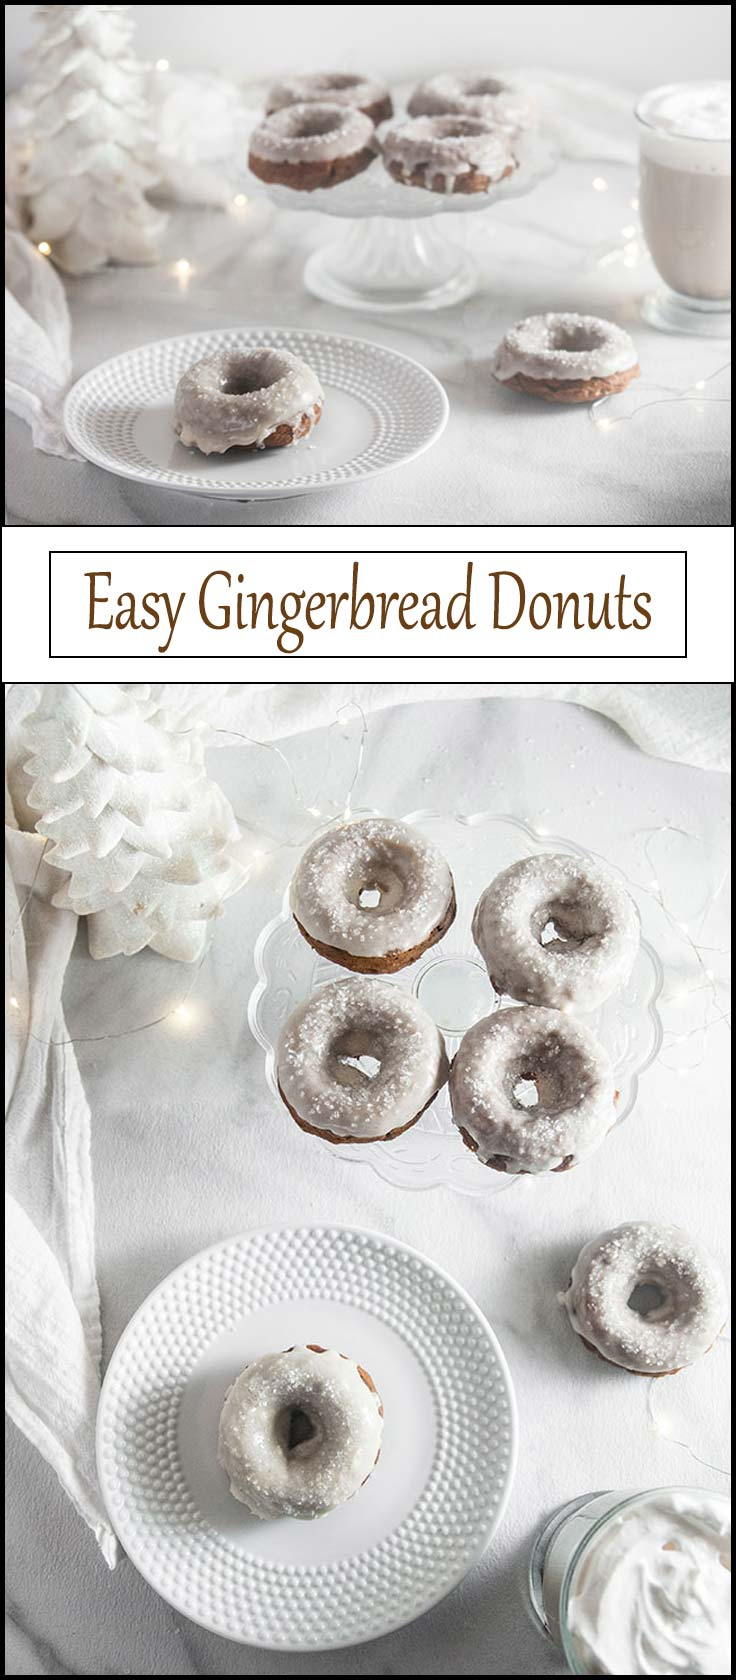 Easy Gingerbread Donuts from www.seasonedsprinkles.com